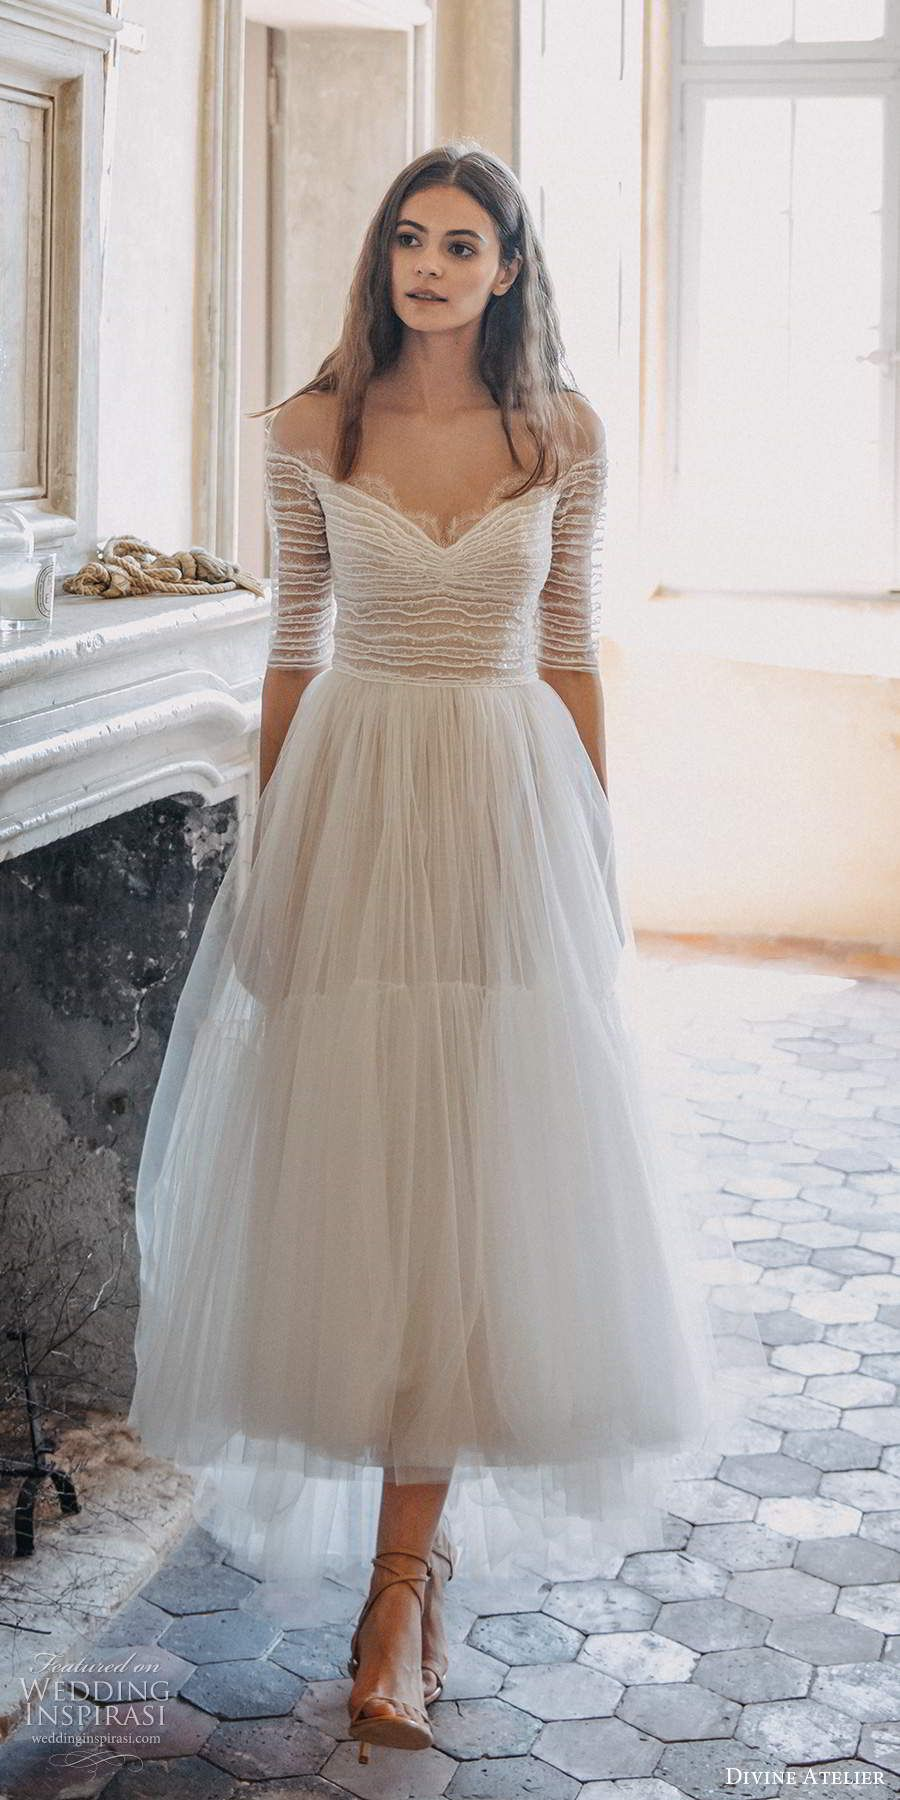 Divine Atelier 2020 Wedding Dresses Wedding Inspirasi Boho Chic Wedding Dress Wedding Dresses High Low Chic Wedding Dresses